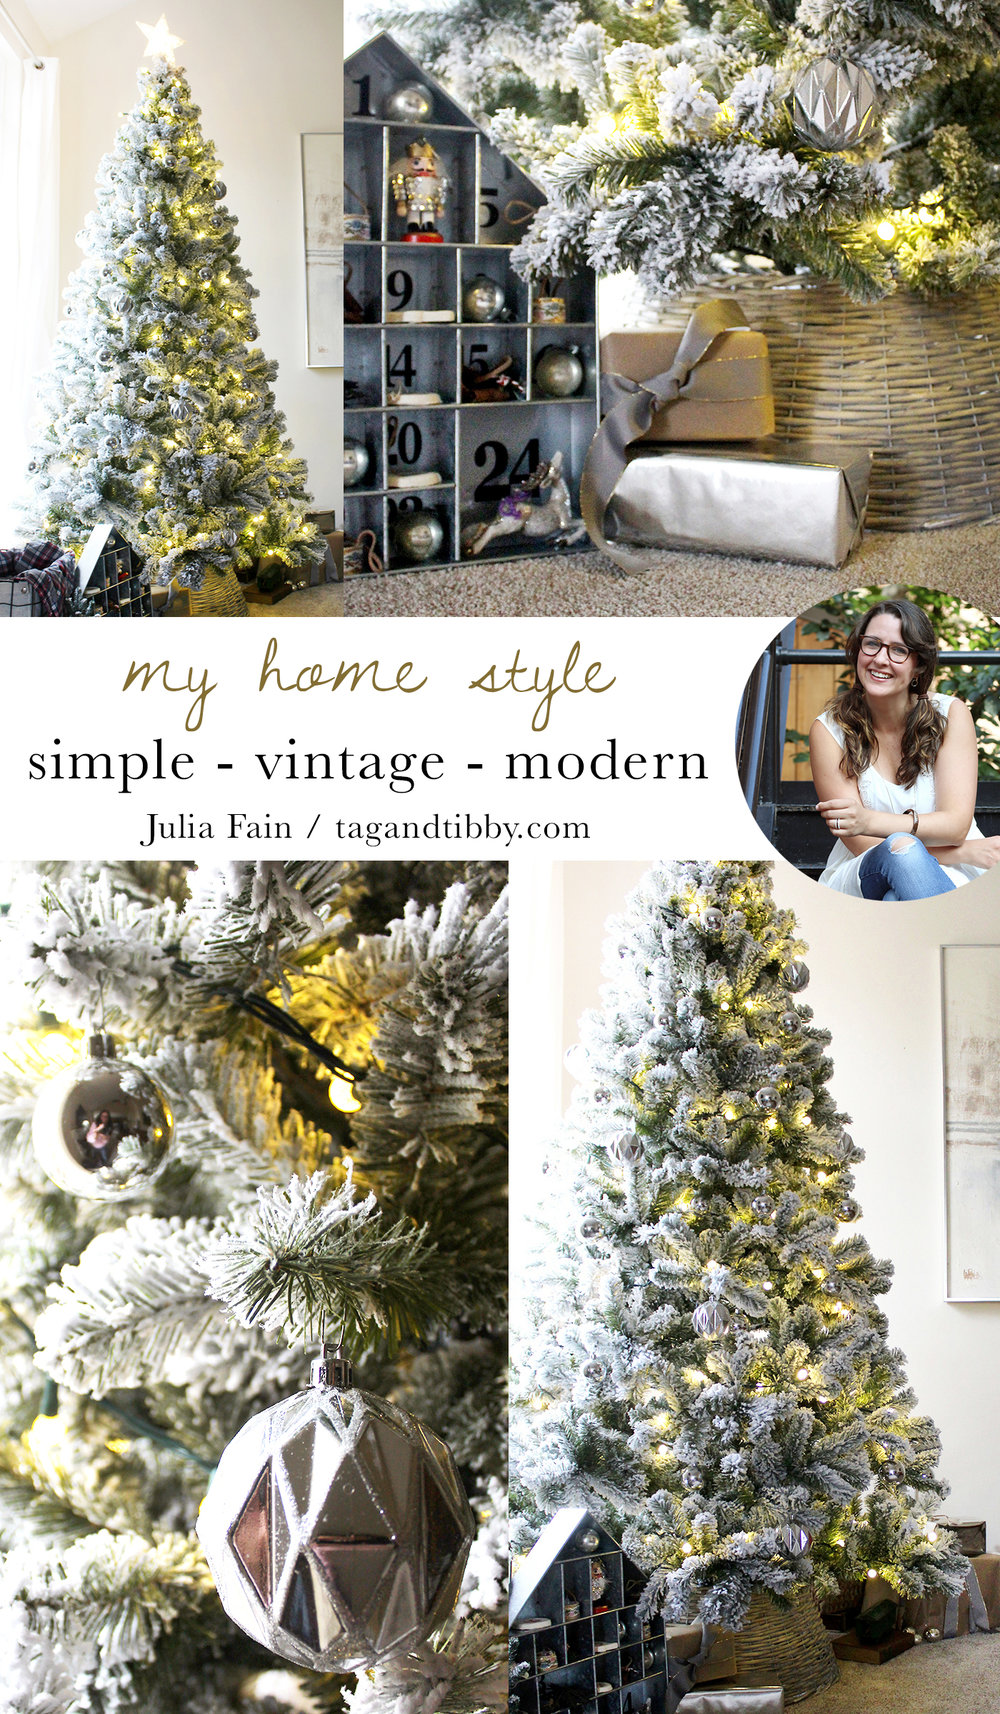 simple, modern, vintage describes the style of this flocked Christmas tree #ChristmasDecor #FlockedTree #ChristmasTree